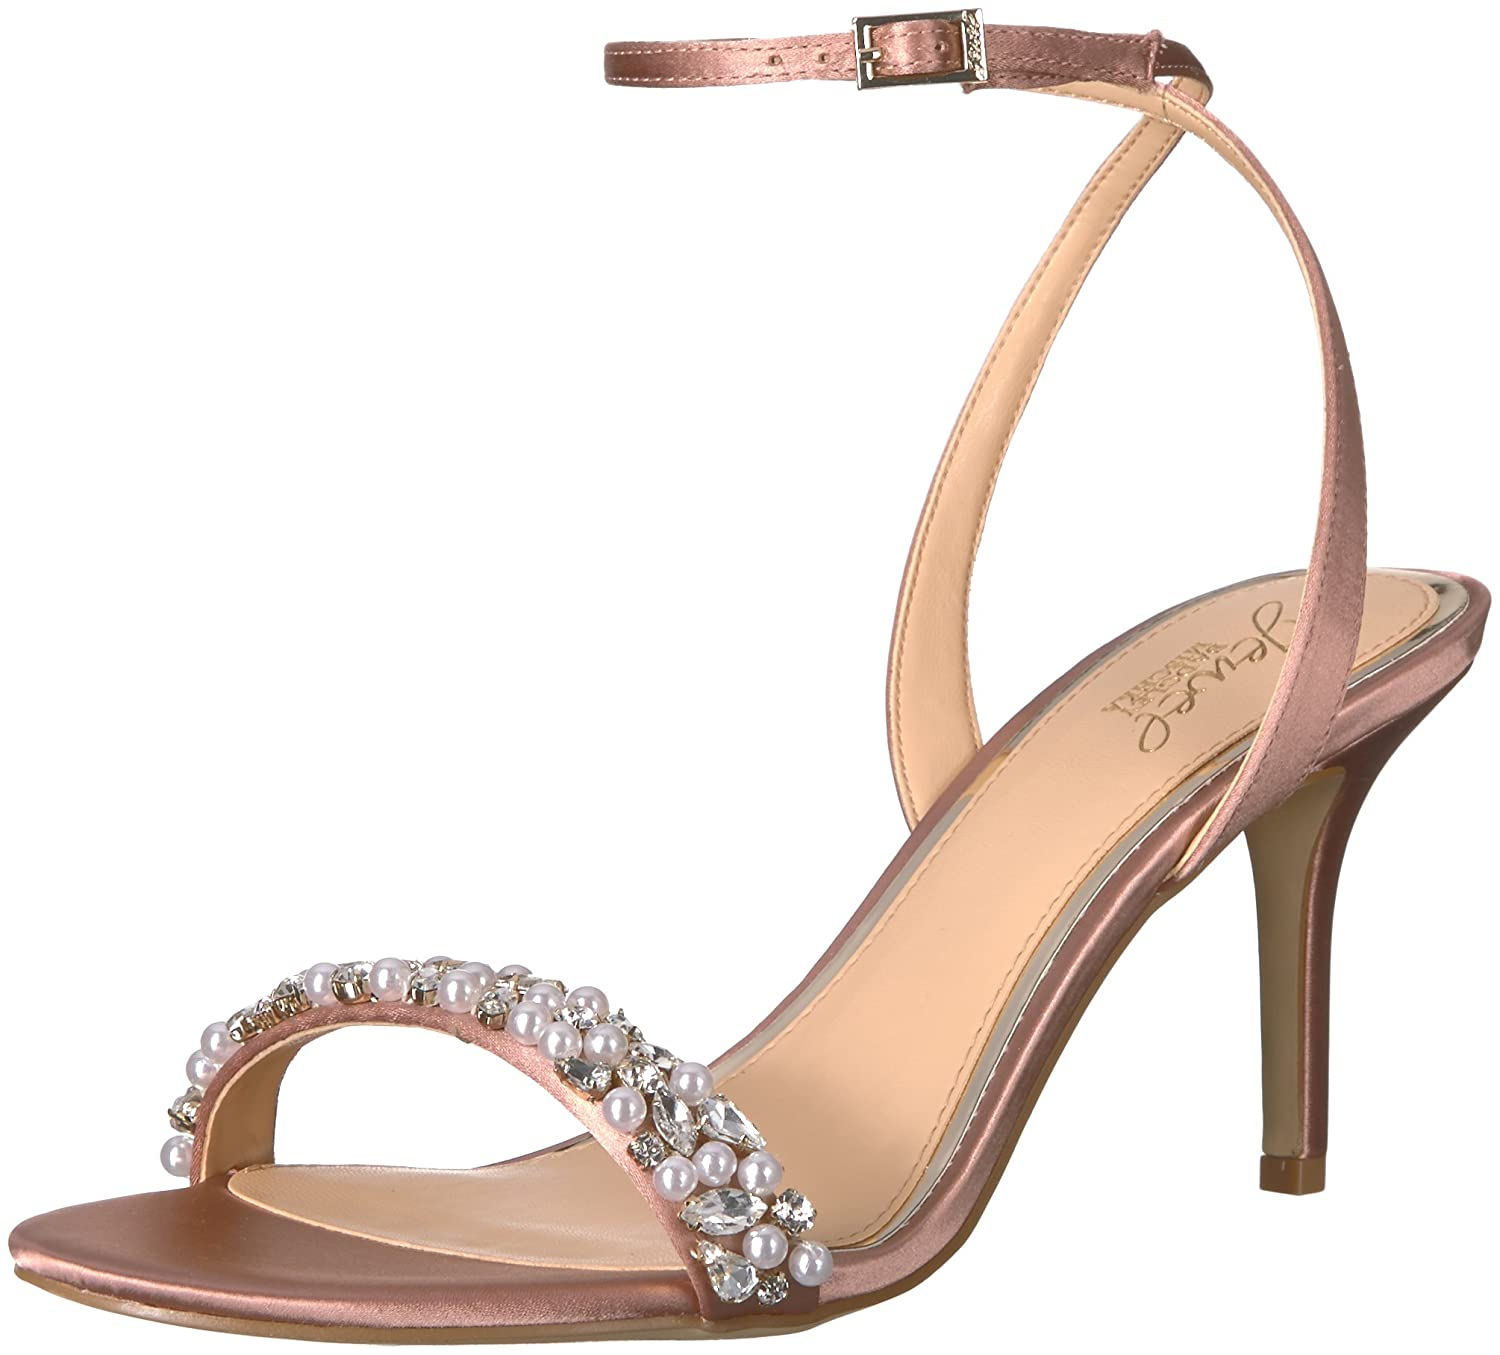 Badgley Mischka Jewel Women's Theodora Heeled Sandal Jewel Badgley Mischka JW2320